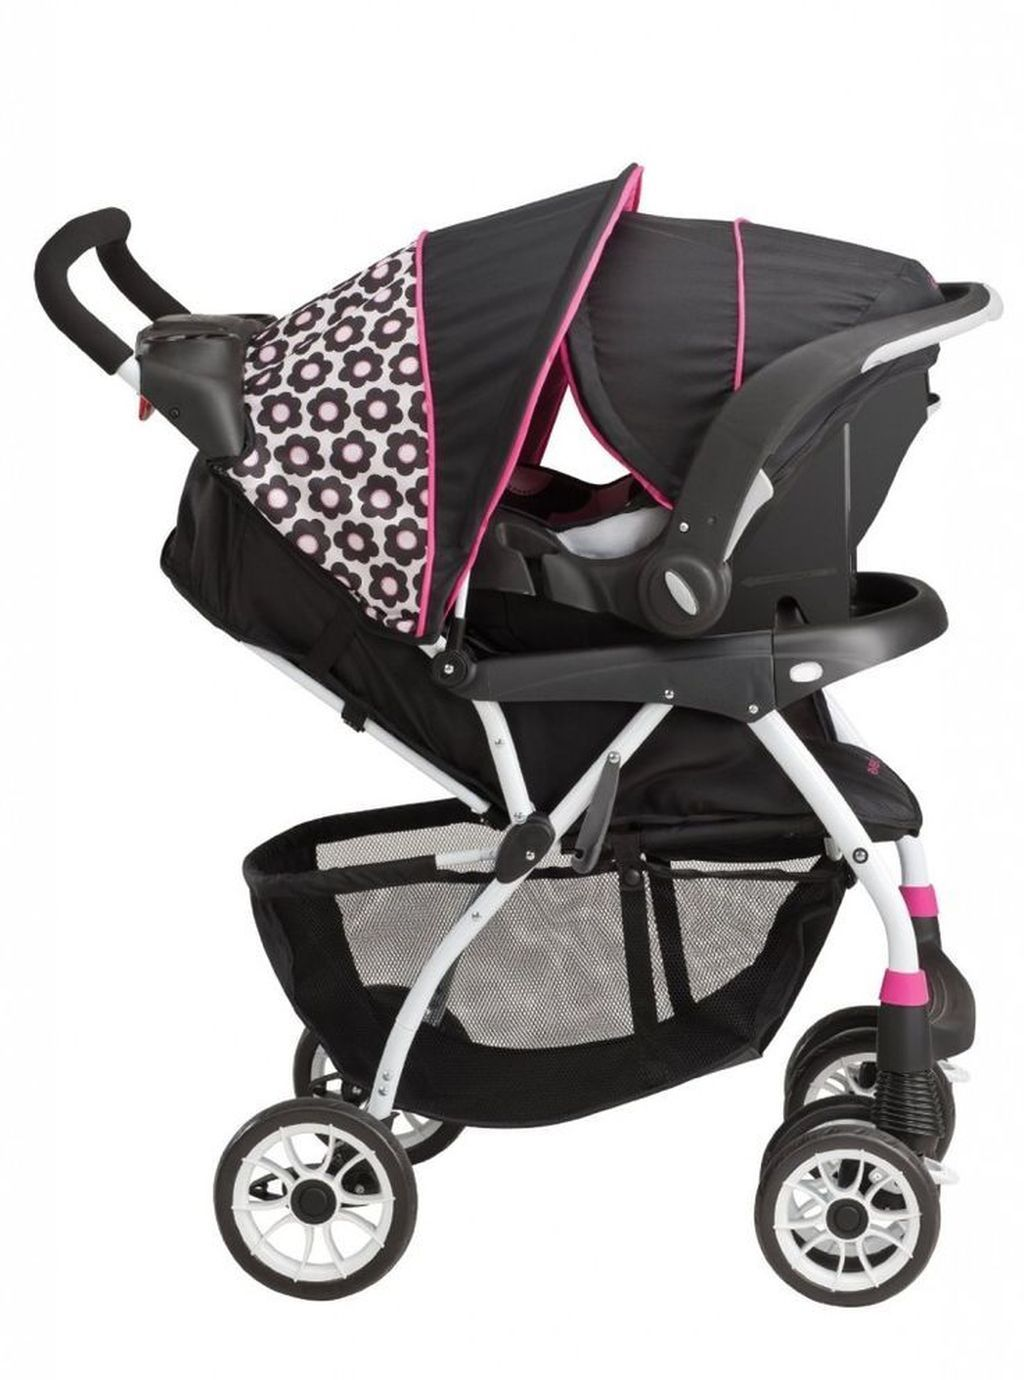 40+ Awesome Baby Strollers Ideas Trends 2019 in 2020 Car